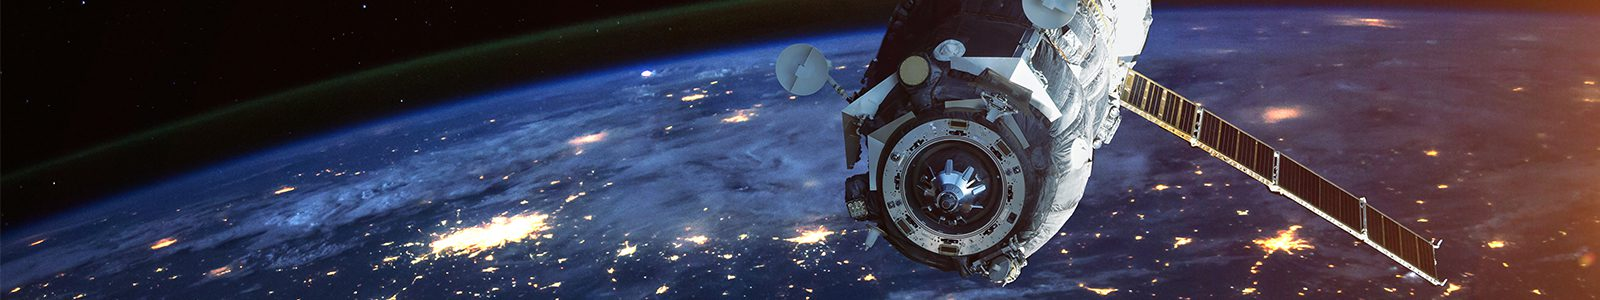 Free-Space Communication News Banner